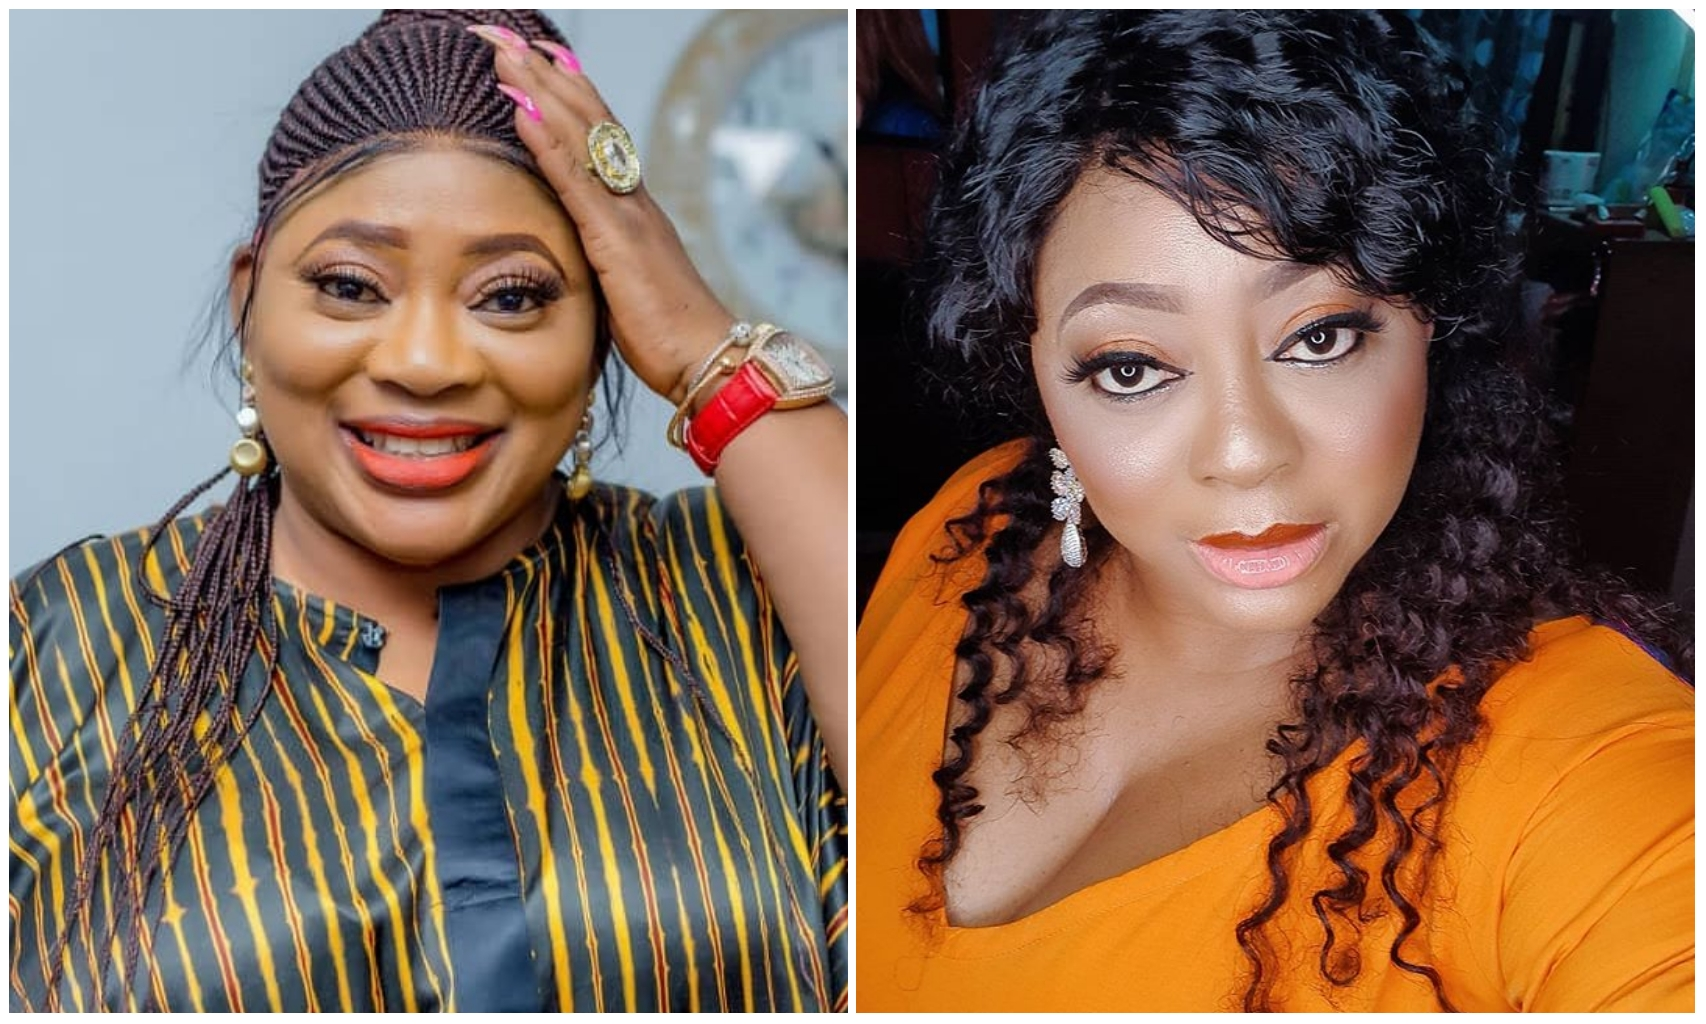 At 51, I'm not too old to remarry – Actress Ayo Adesanya reveals